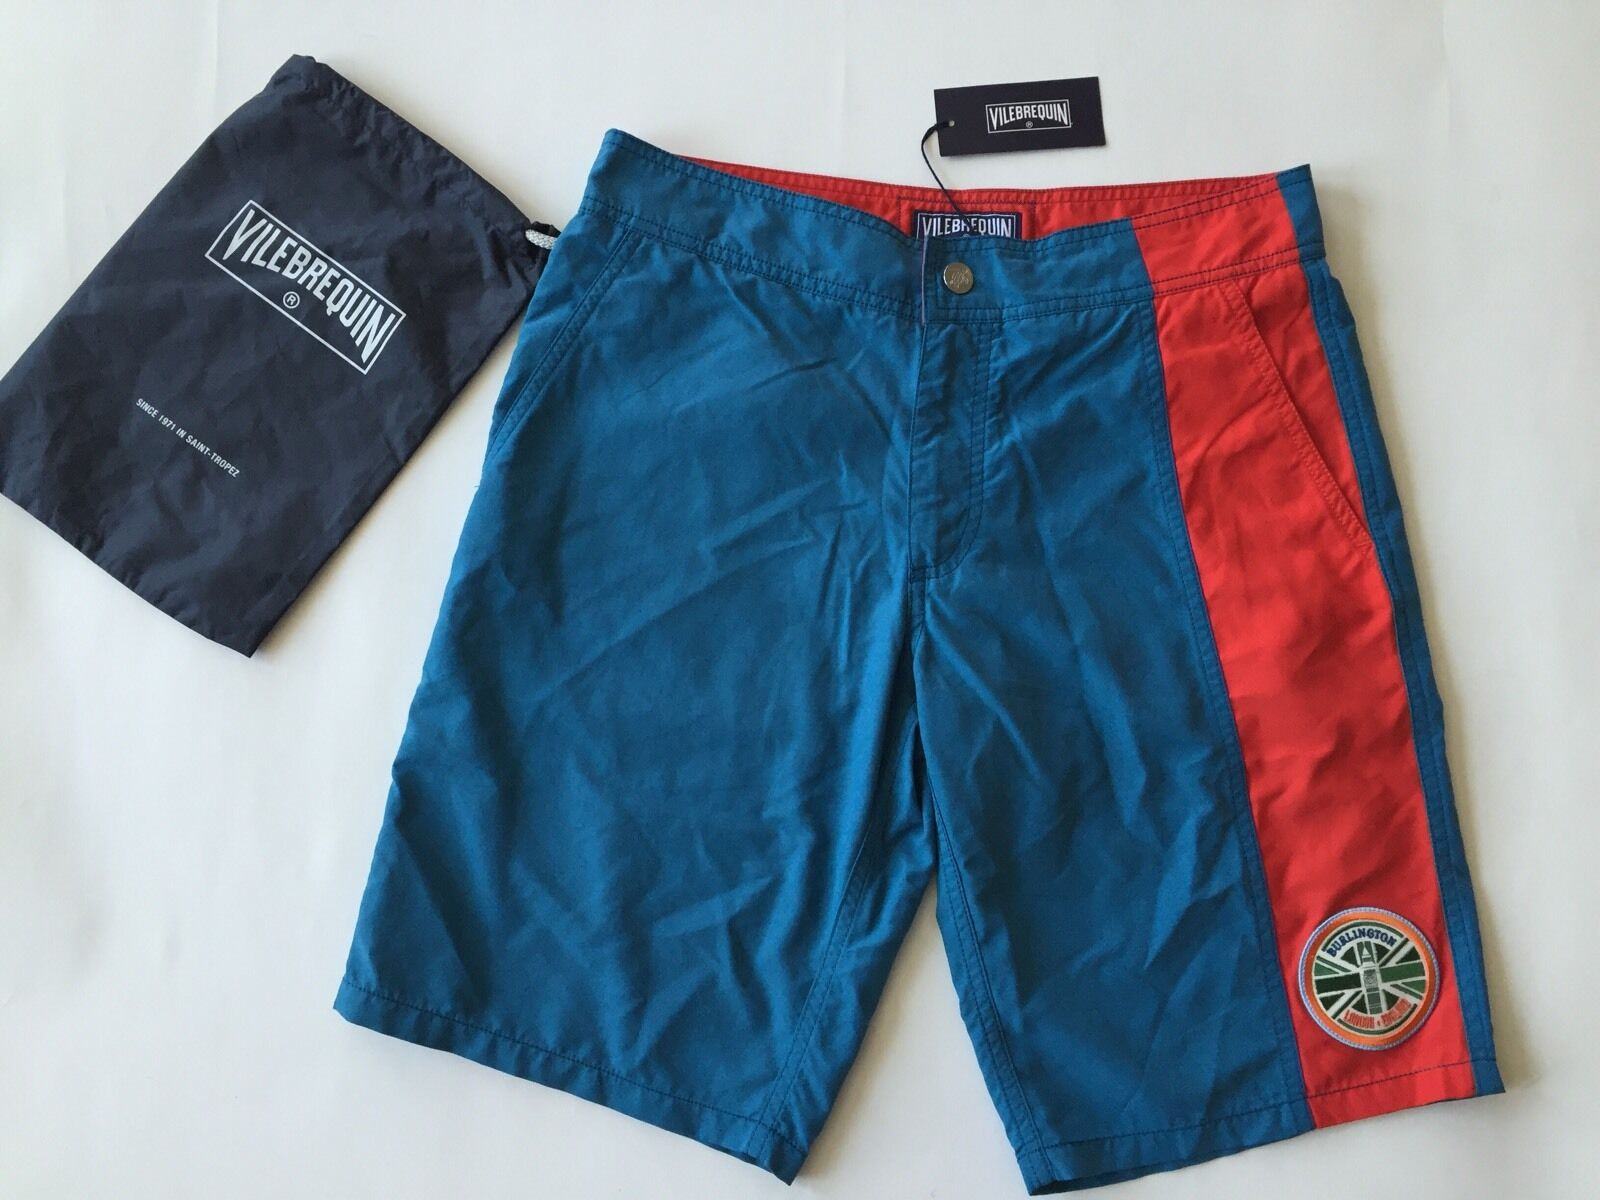 New w Tags & Bag Authentic Vilebrequin Melta bluee & Red Swim Trunks Men Size M